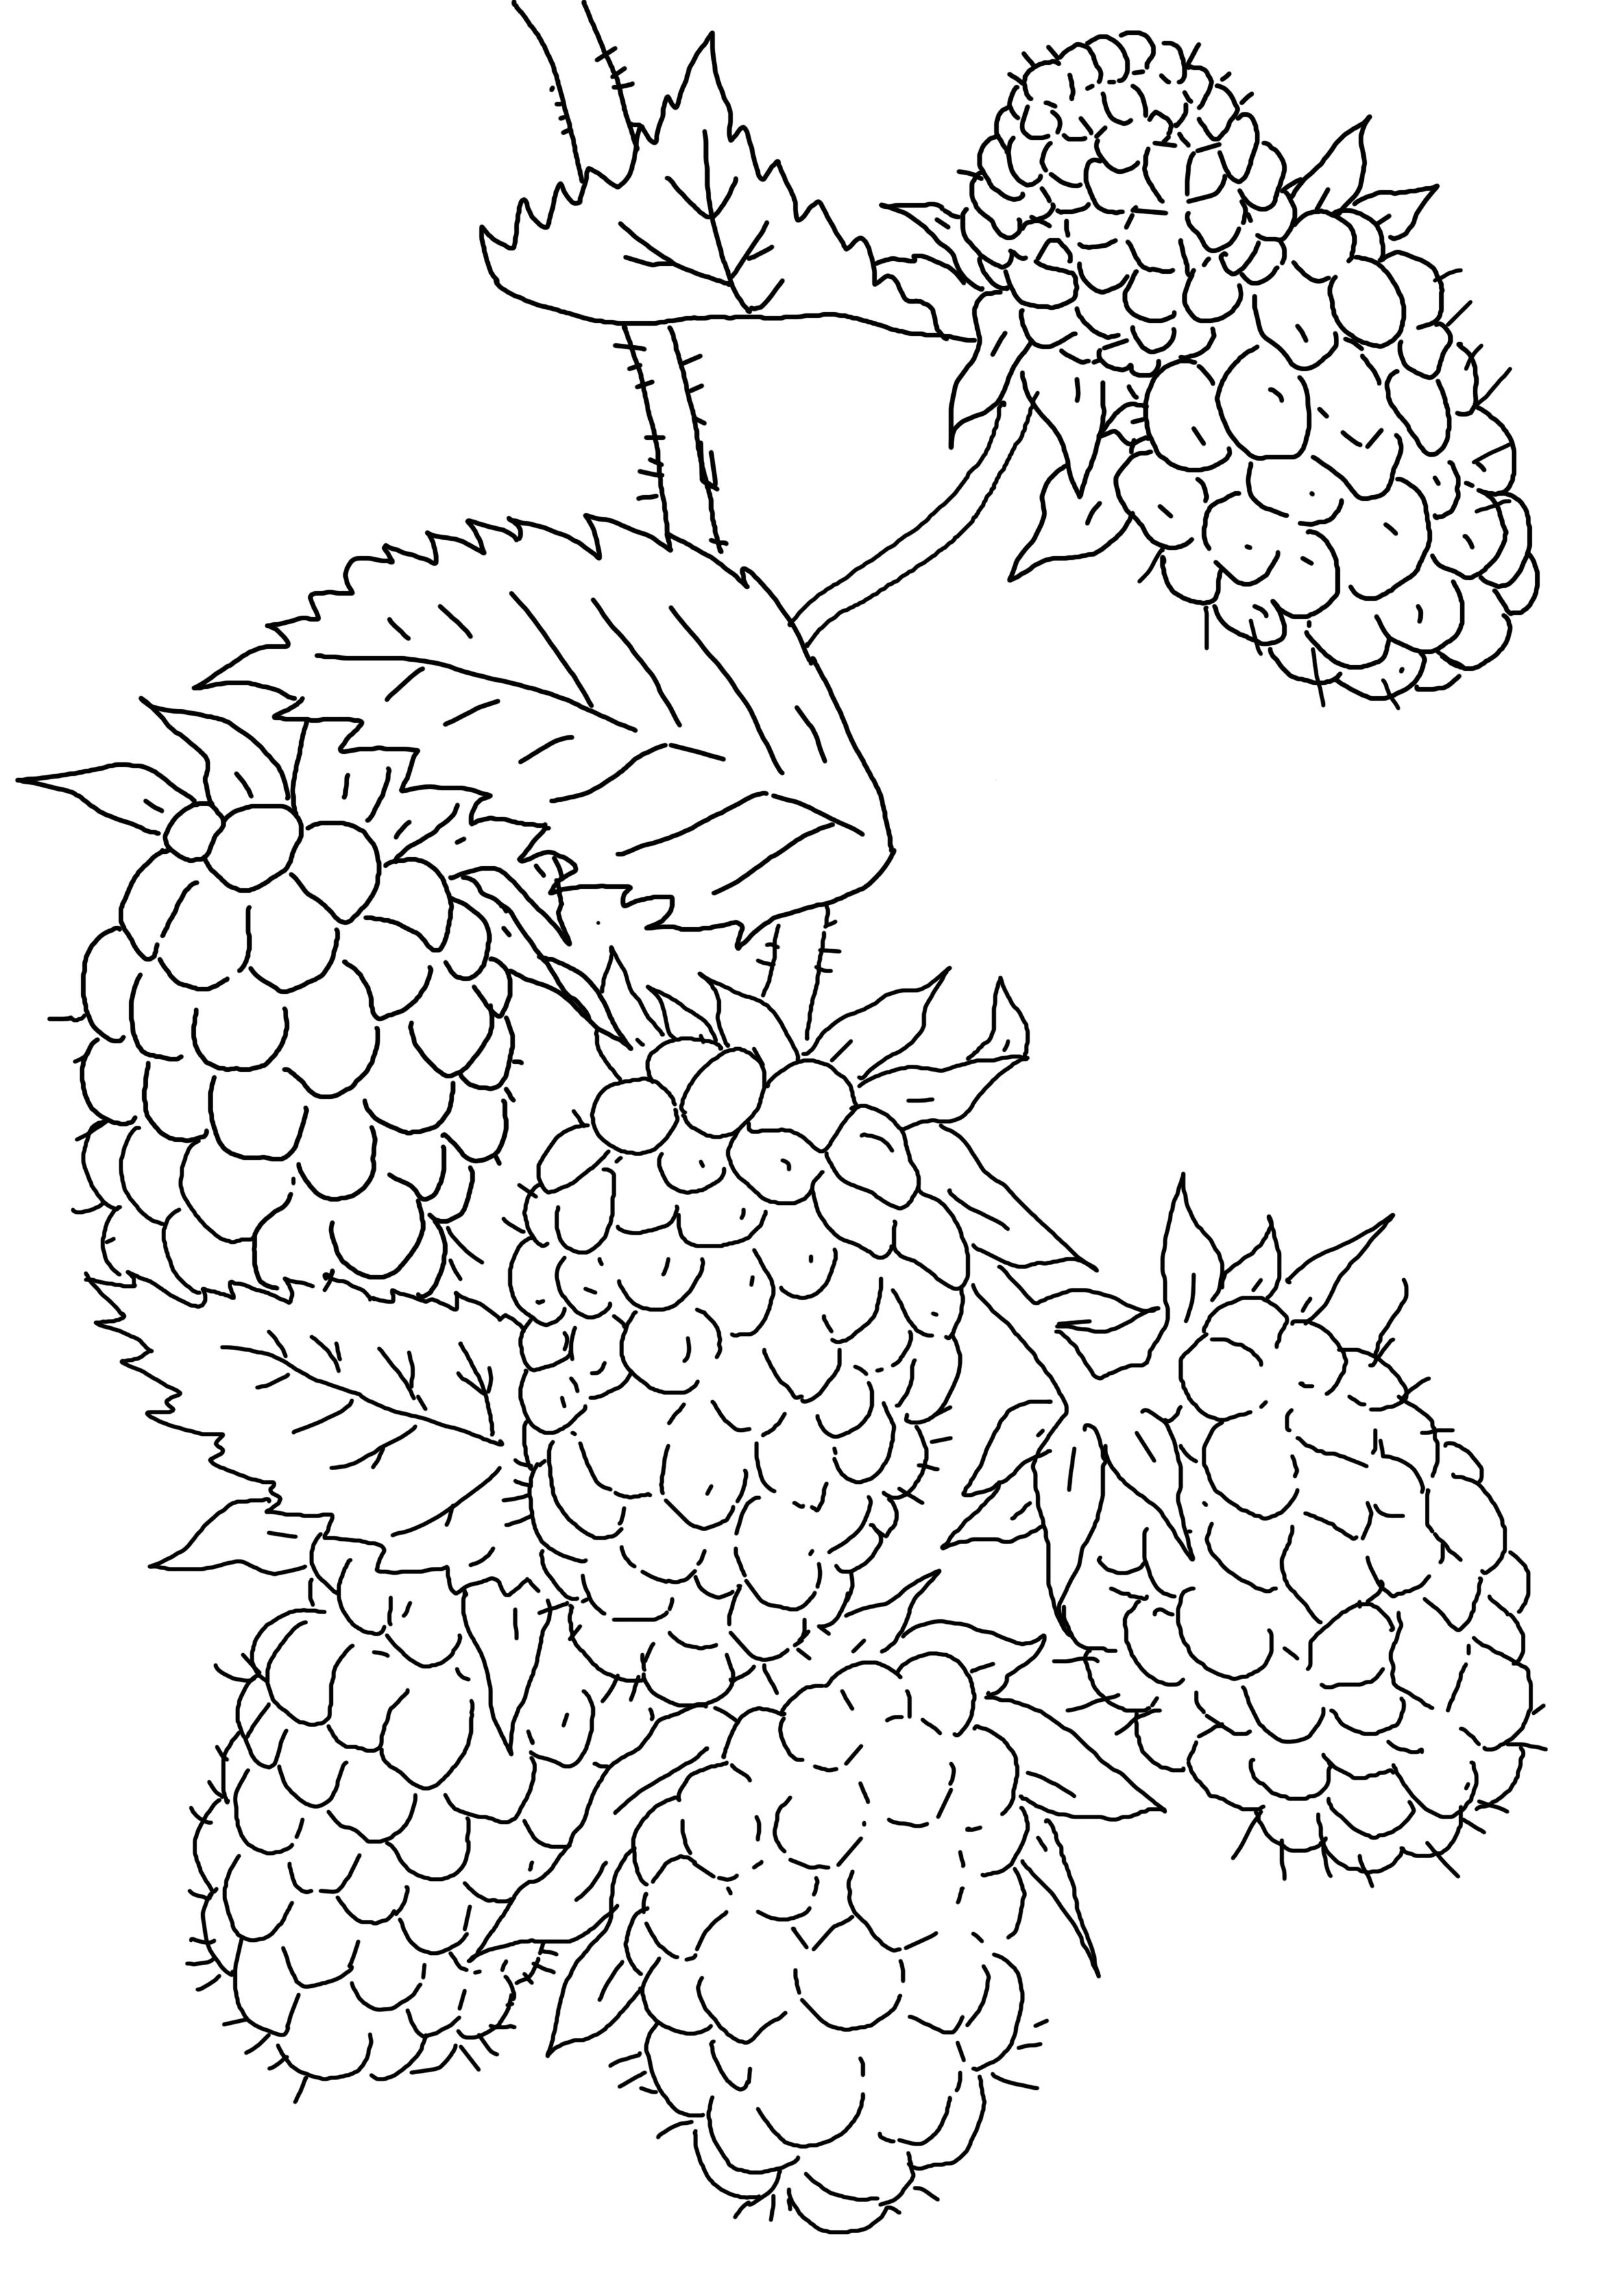 coloring pages blackberries - photo#9